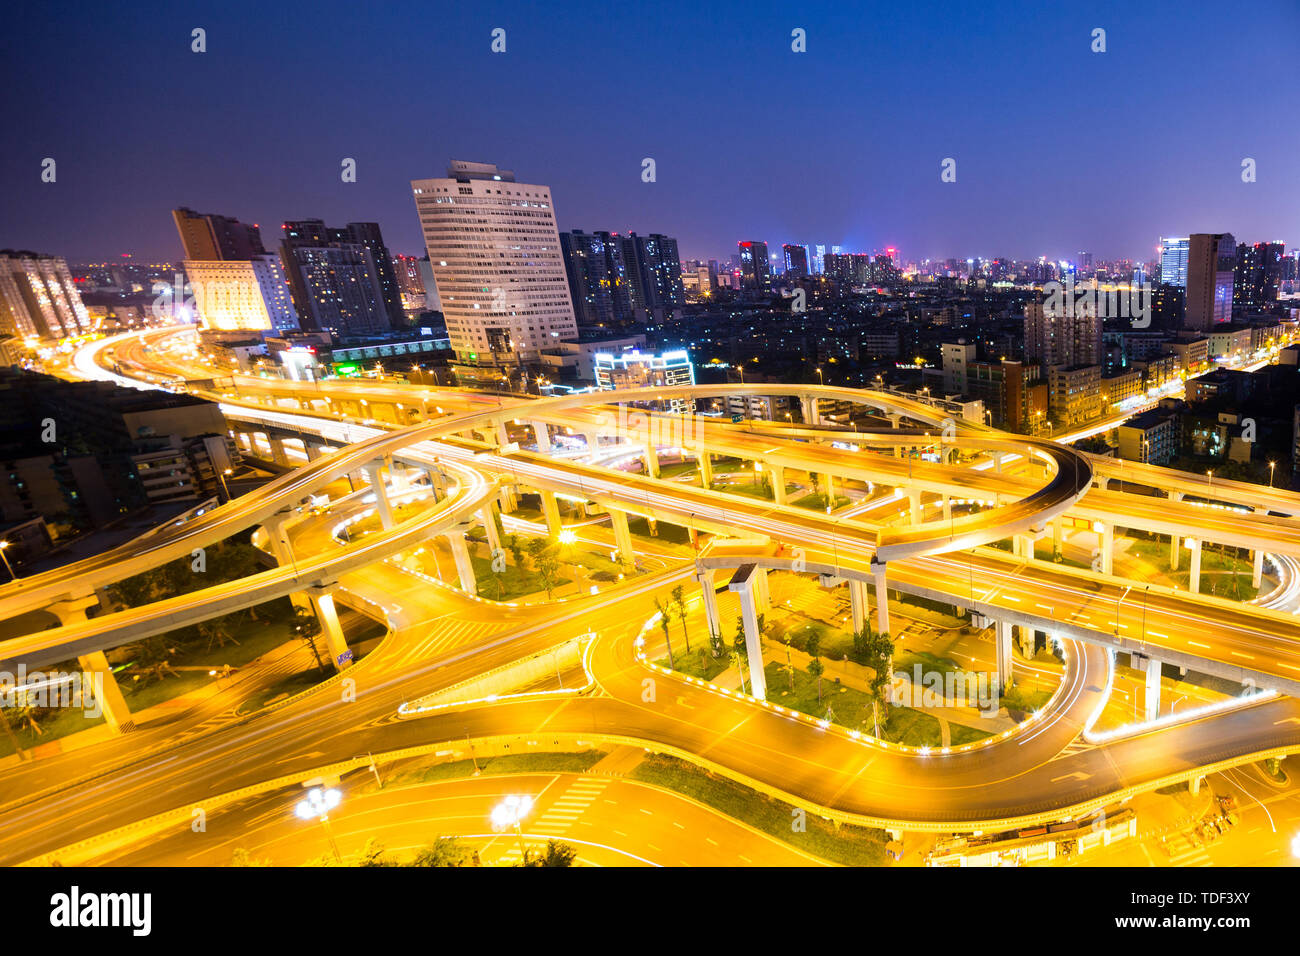 skyline and elevated roads - Stock Image